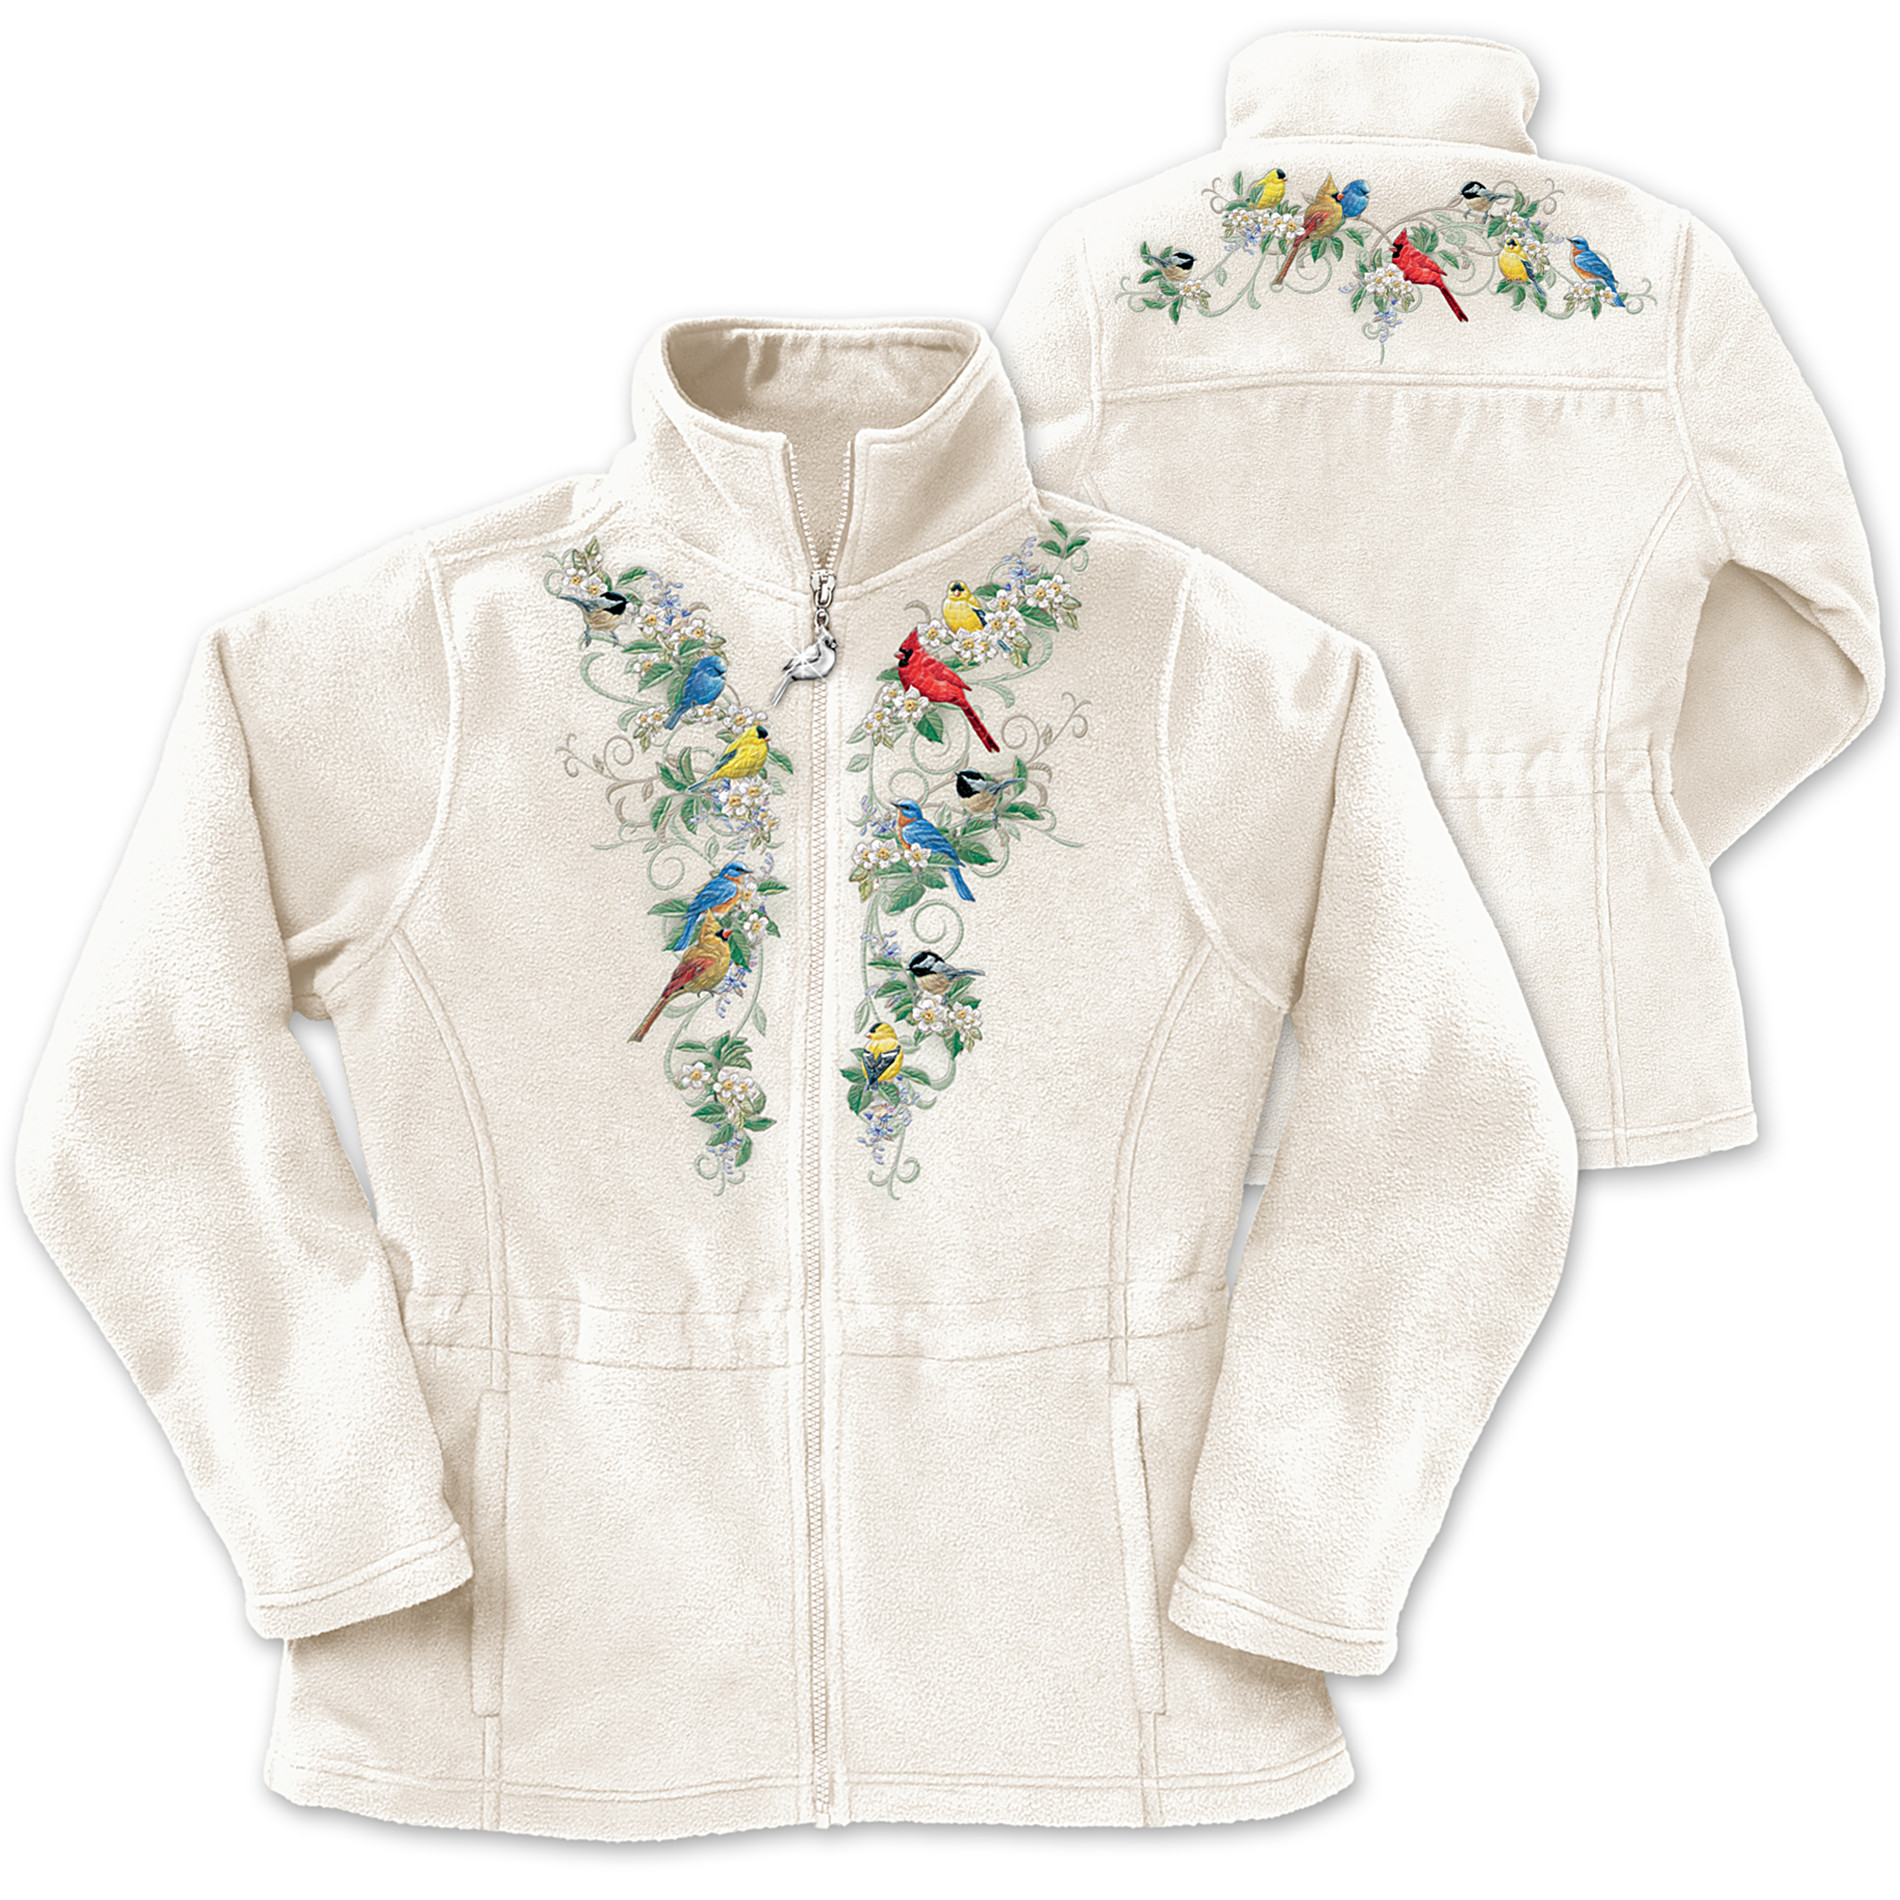 The Bradford Exchange Songbird And Floral Art Women's Fleece Jacket: Nature's Symphony at Sears.com